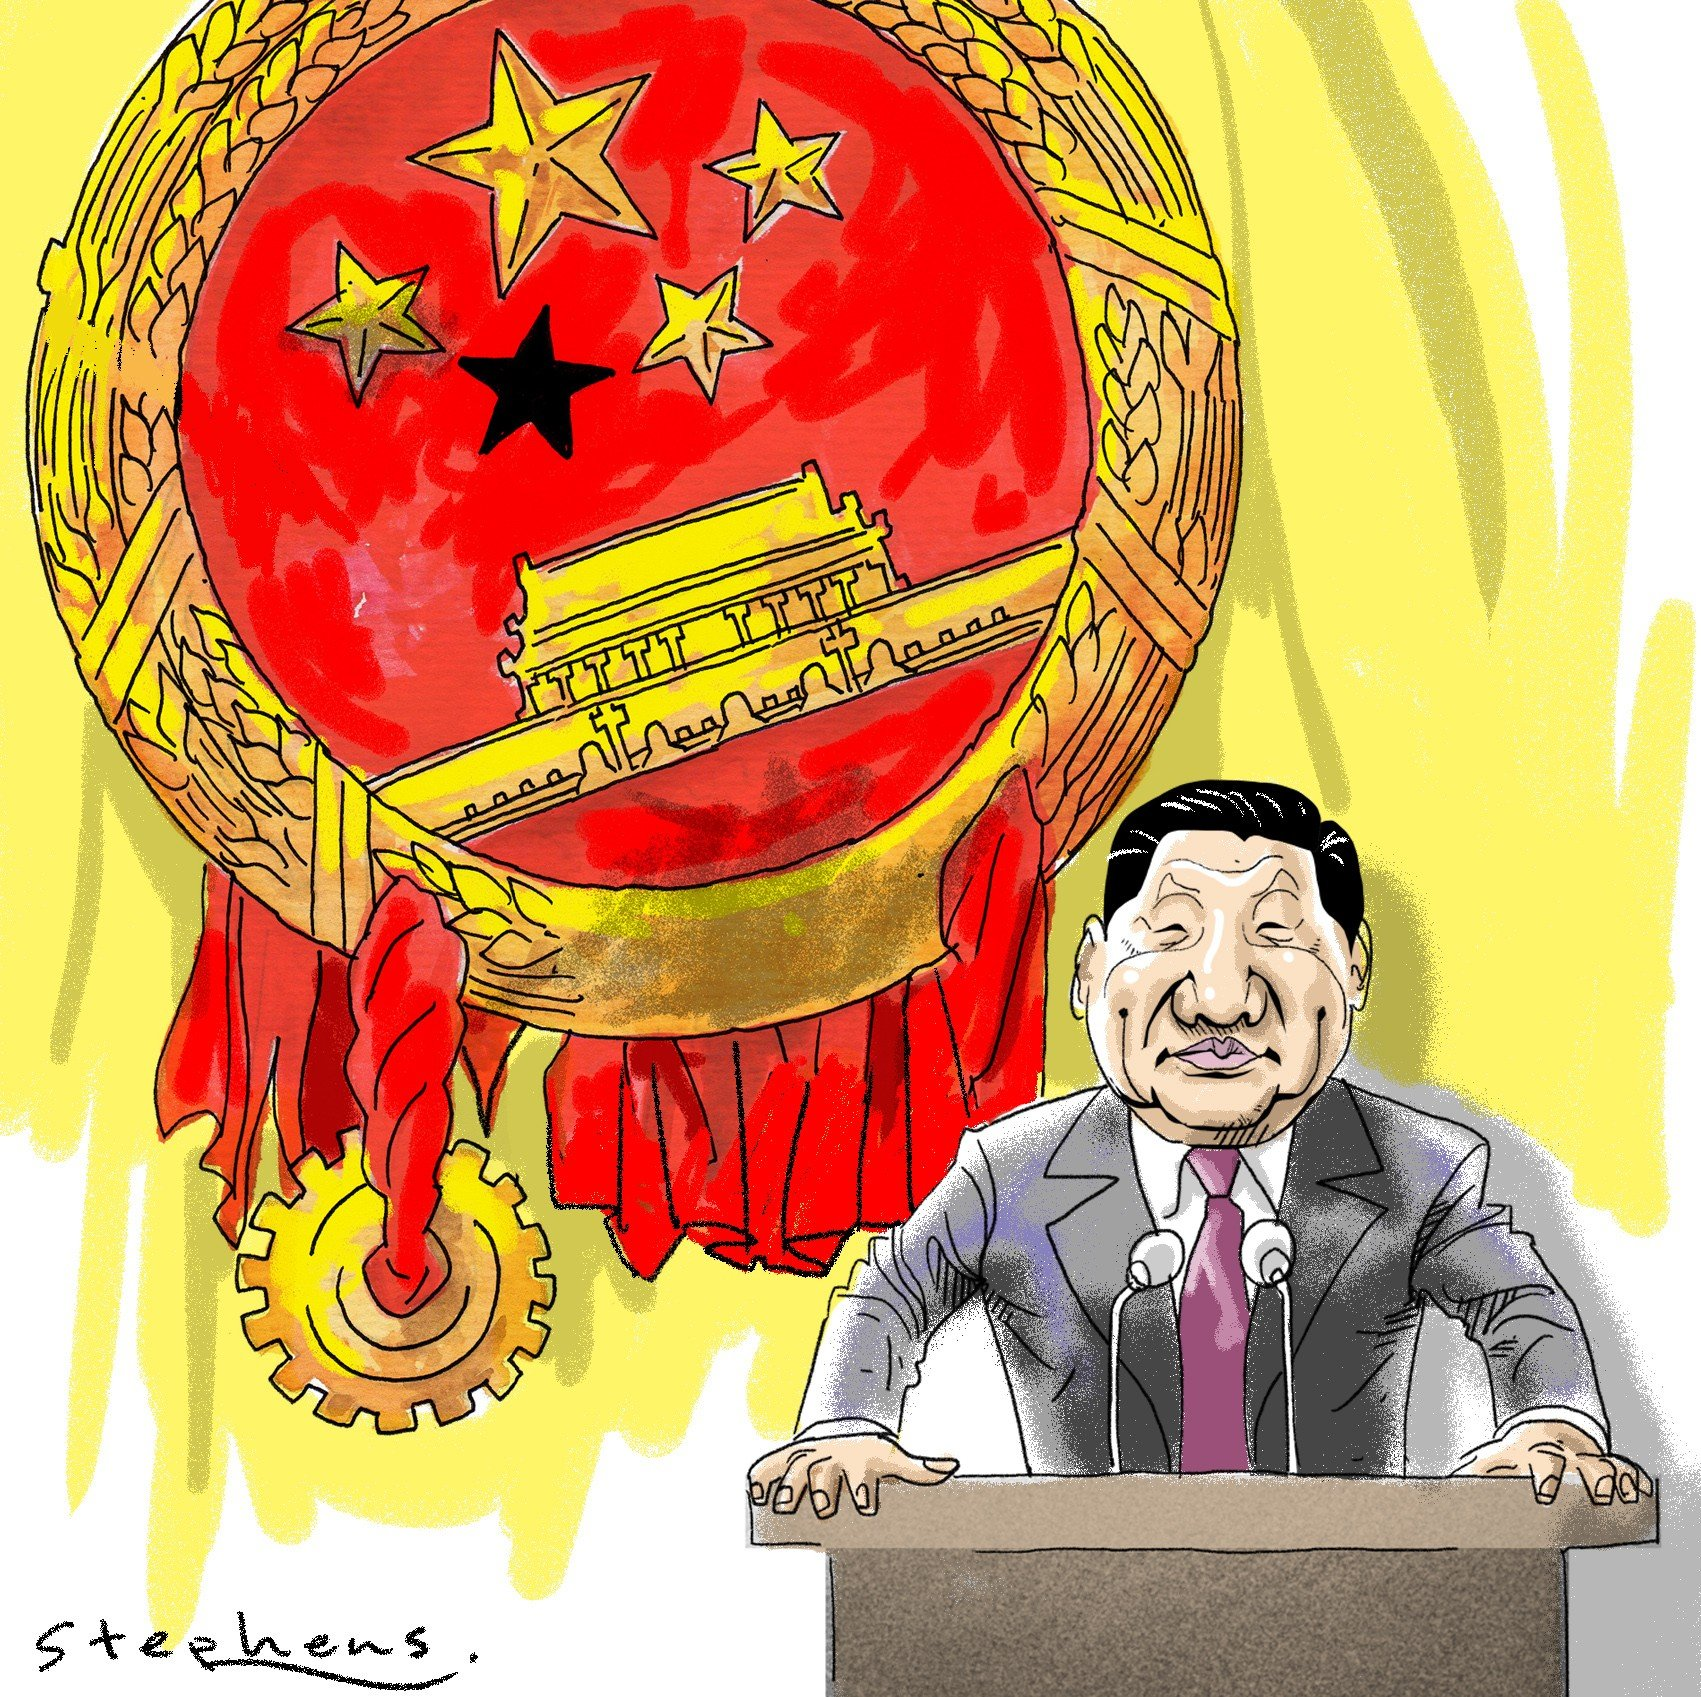 Myths and truth about China and the Chinese